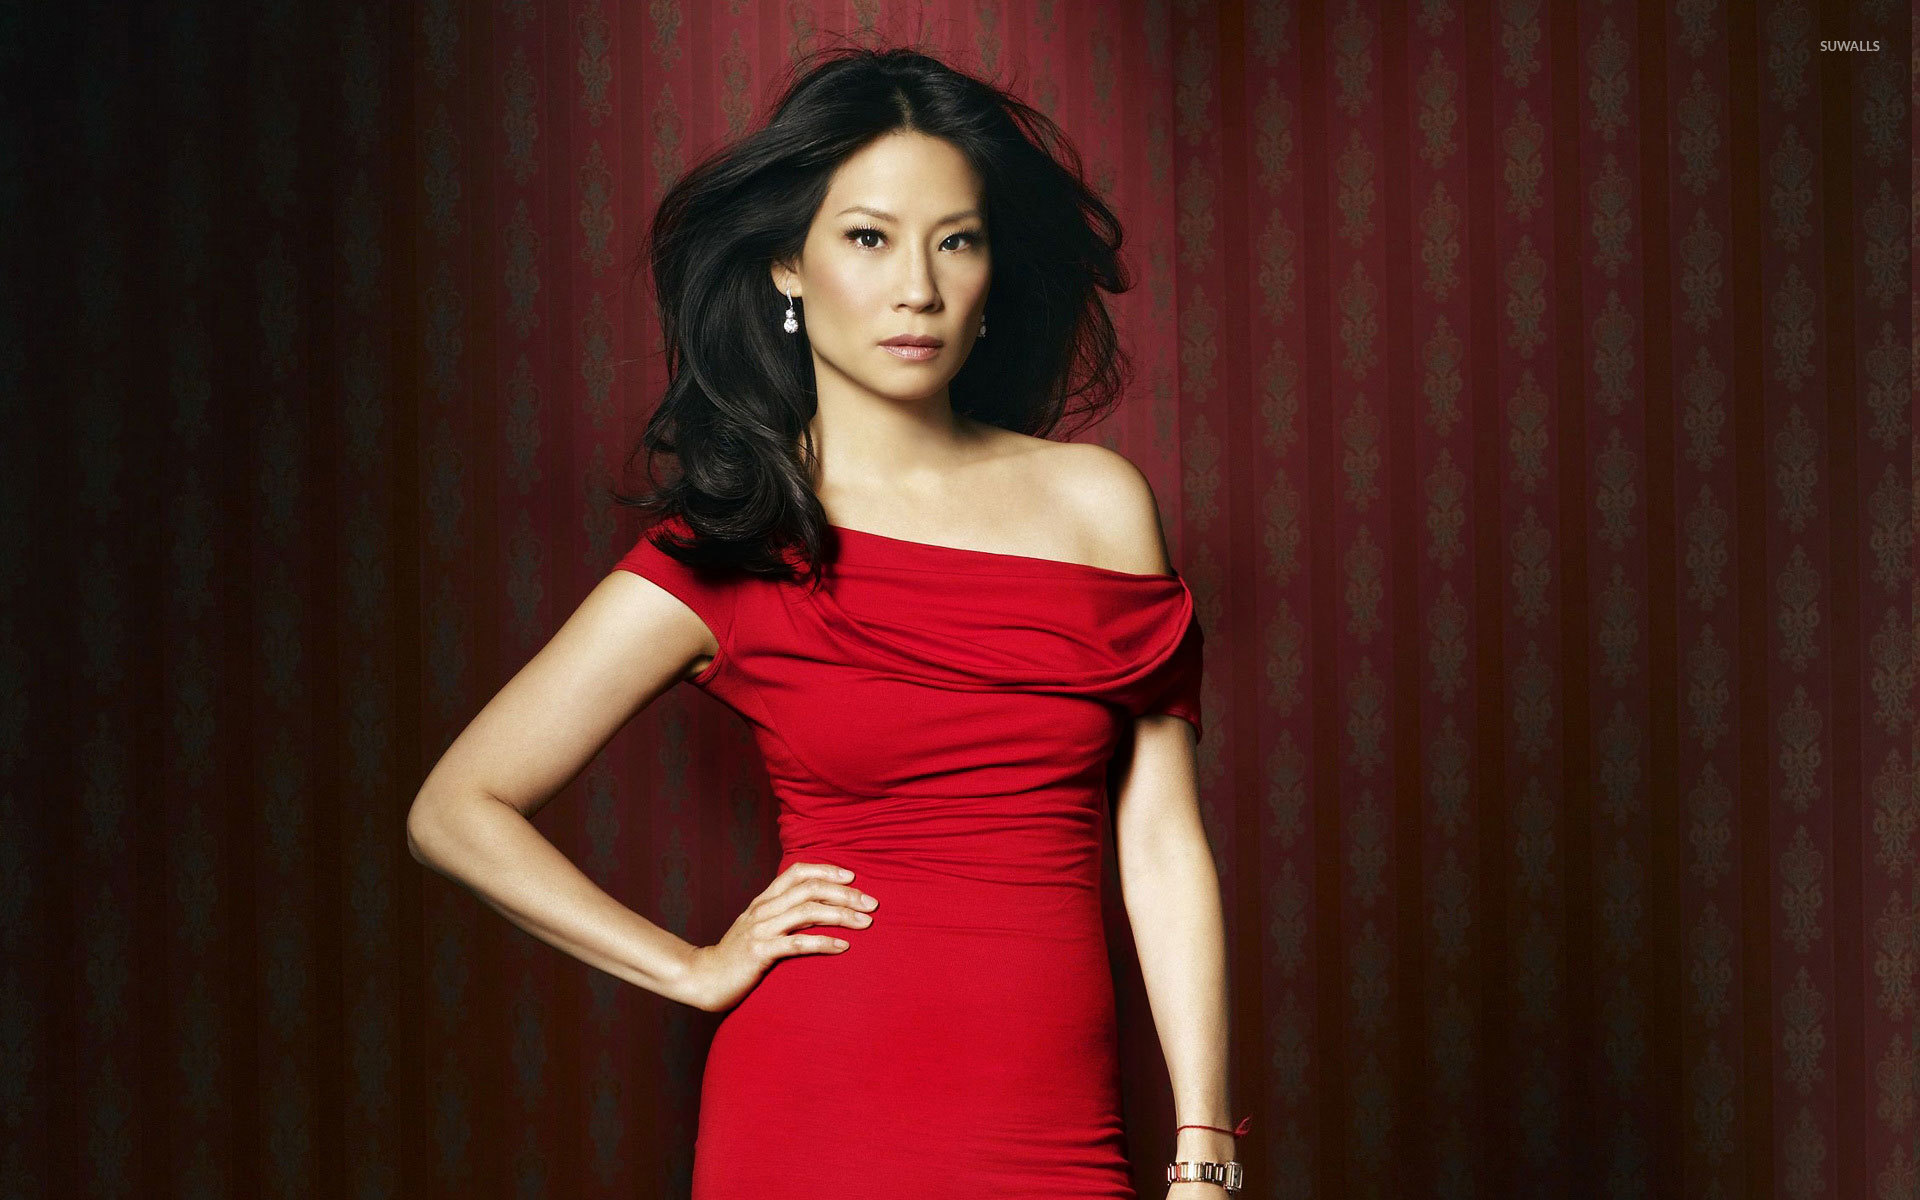 6100236-lucy-liu-wallpapers